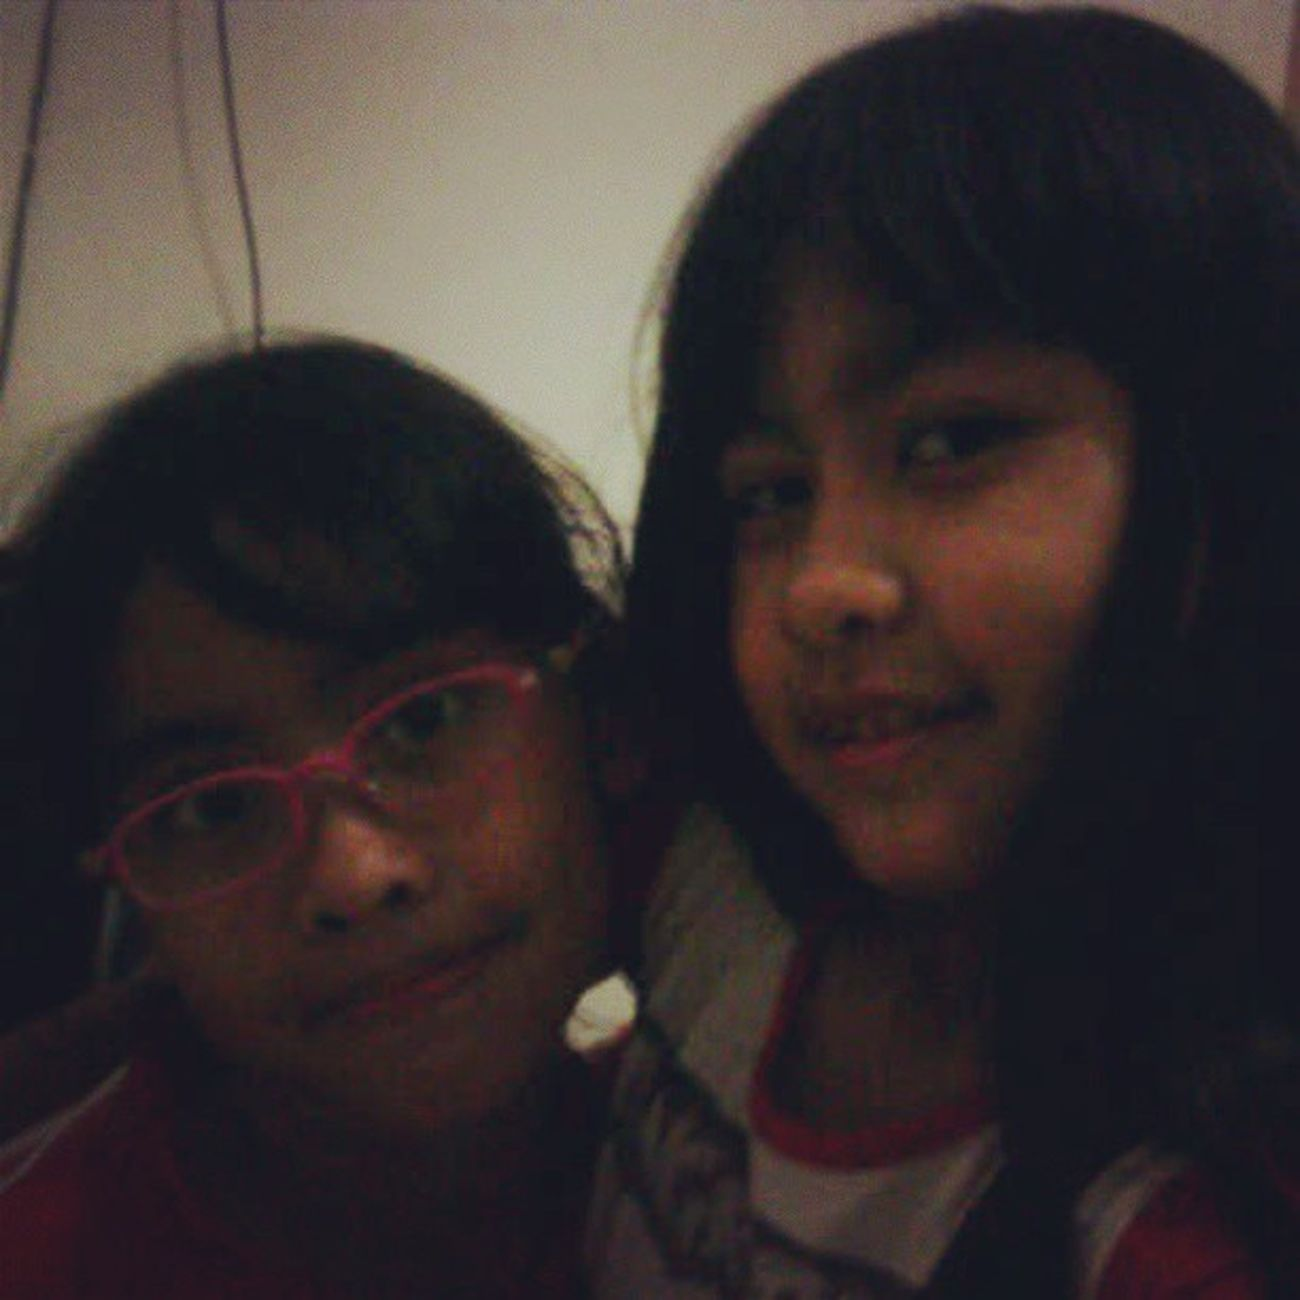 miss both of them.. my lit sist sent this beauty pic by bbm haha they grow so fast Mycutesisters Lovelysister Cutegirl